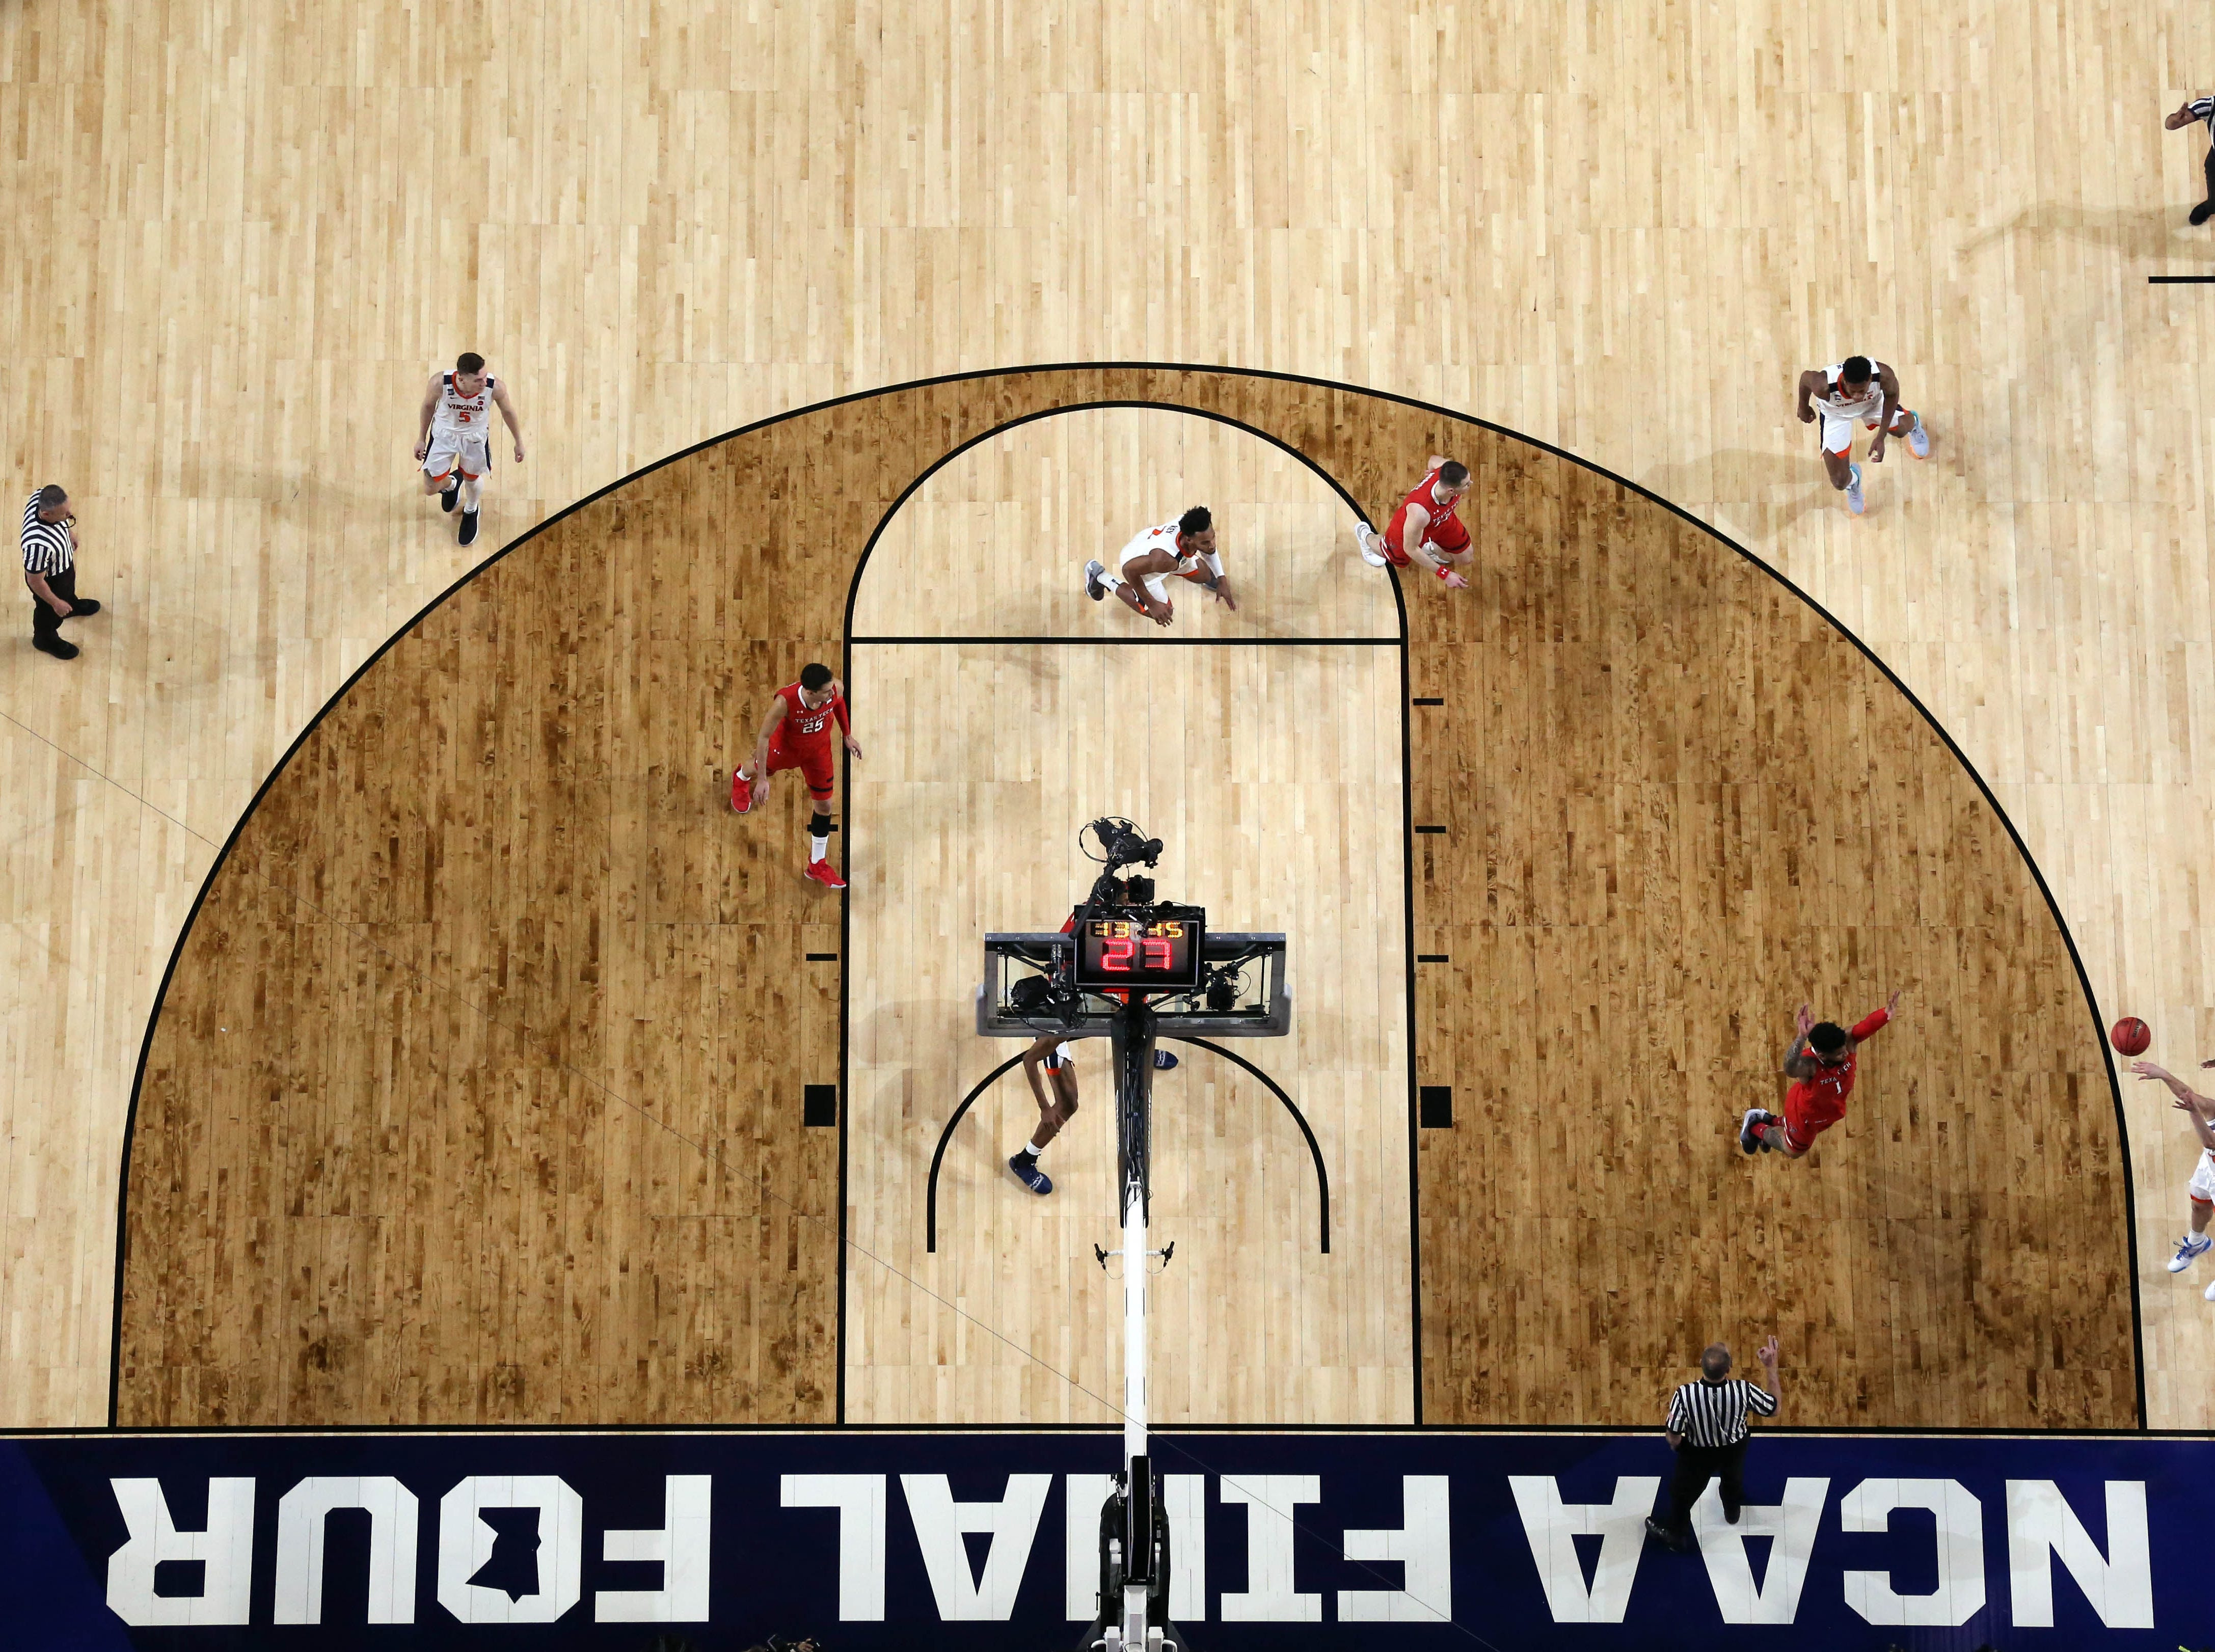 Apr 8, 2019; Minneapolis, MN, USA; A general view as Virginia Cavaliers guard Ty Jerome (11) shoots a three-pointer during the first half against the Texas Tech Red Raiders in the championship game of the 2019 men's Final Four at US Bank Stadium. Mandatory Credit: Bob Donnan-USA TODAY Sports